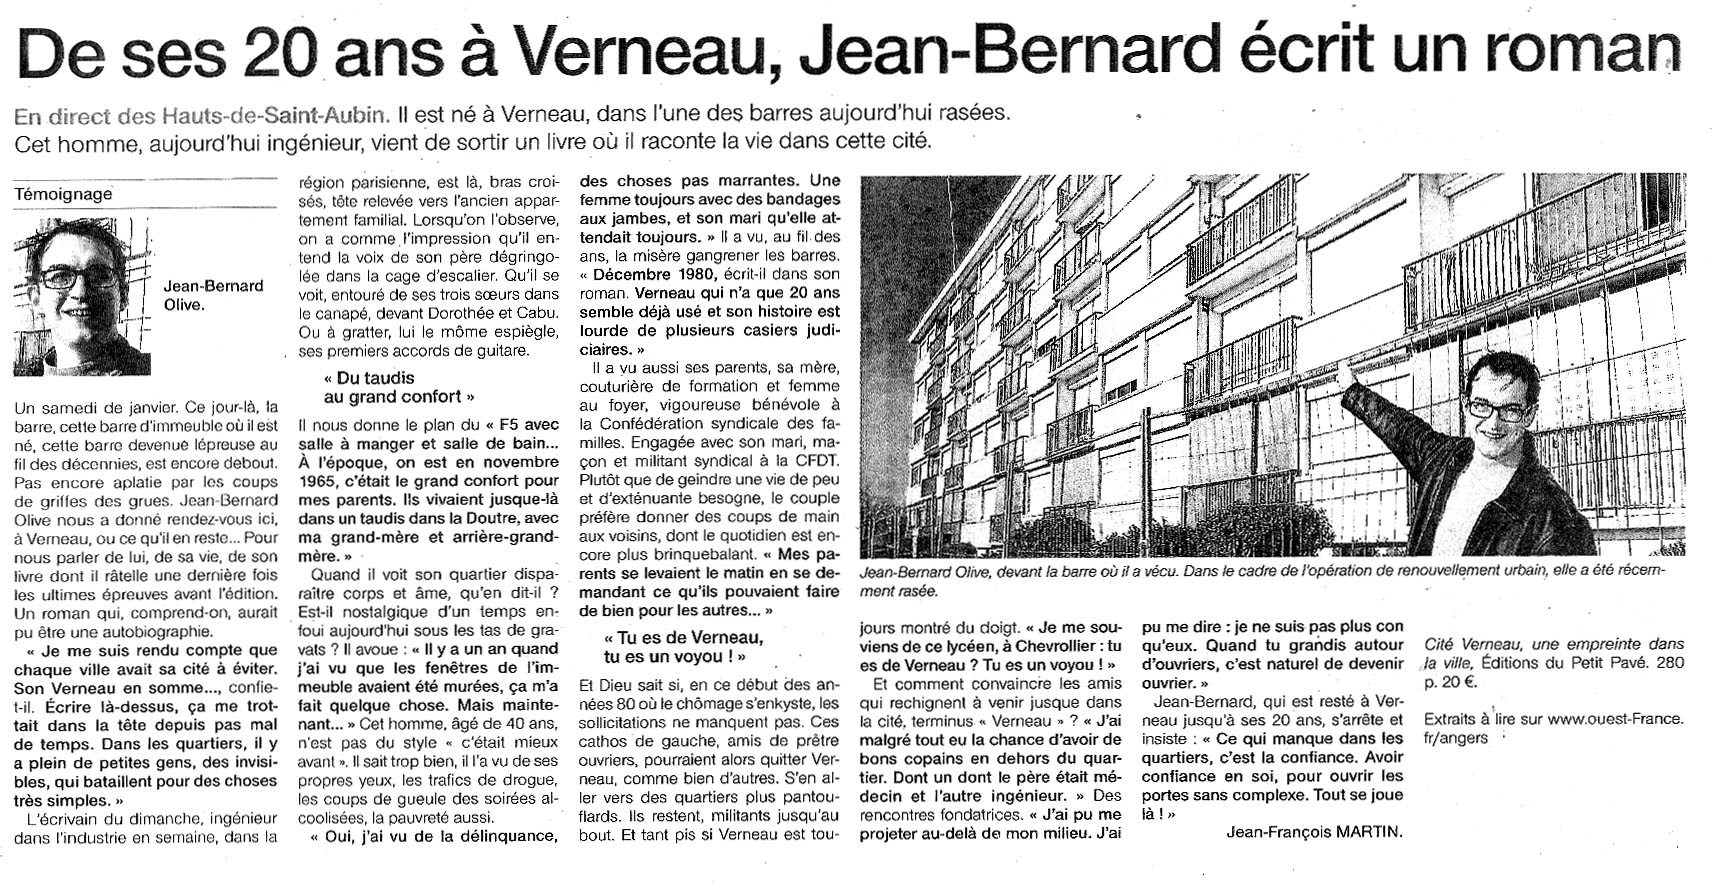 Cit� Verneau - Document Article_Verneau_OF.jpg